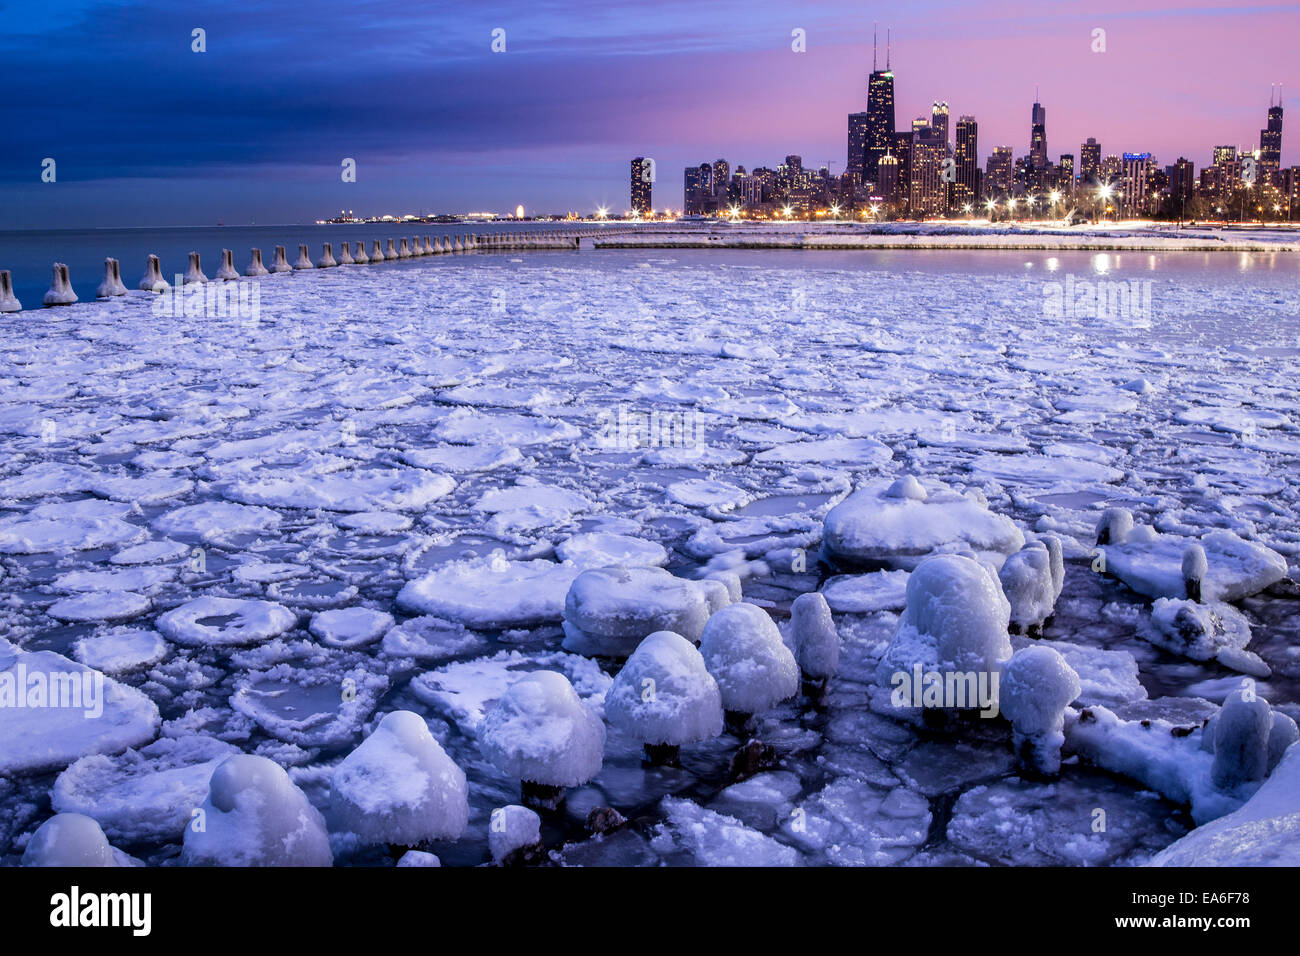 USA, Illinois, Chicago, Illuminated skyline seen across icy harbor - Stock Image